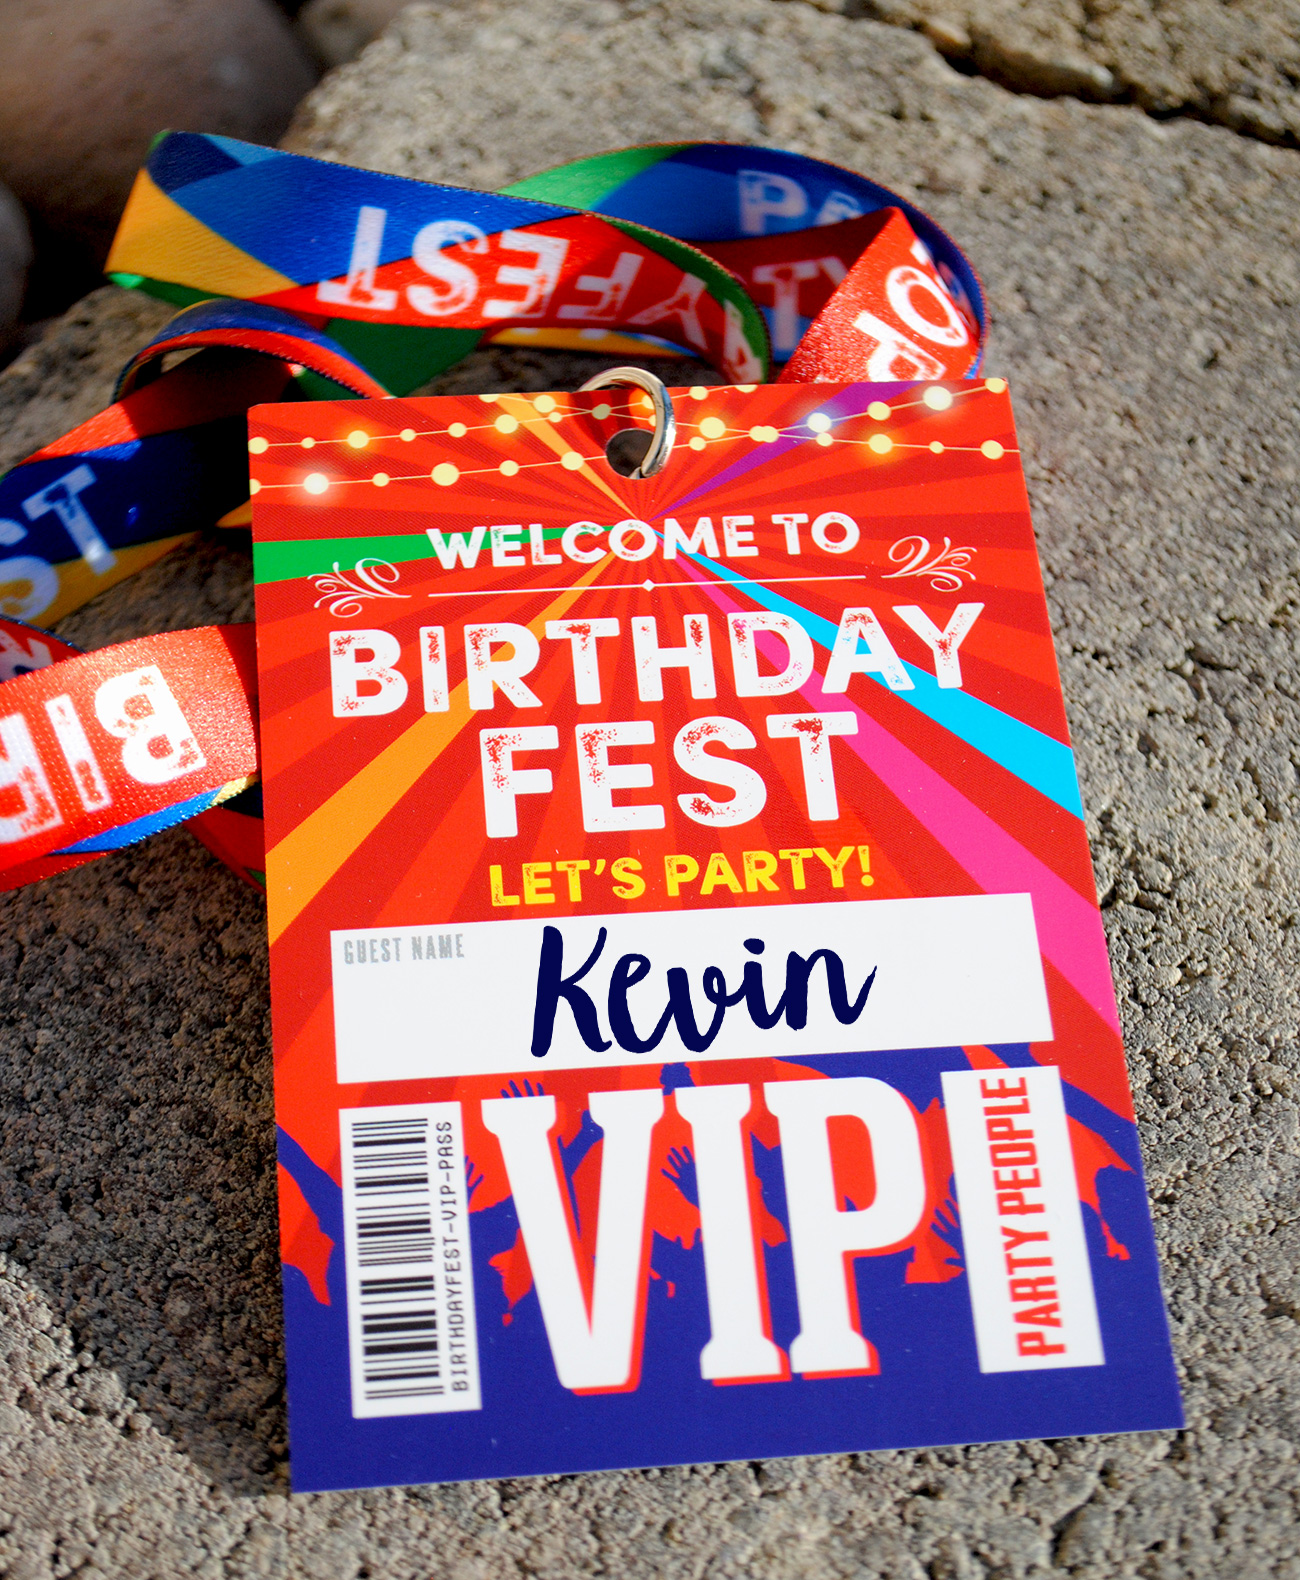 birthdayfest birthday party vip pass lanyard